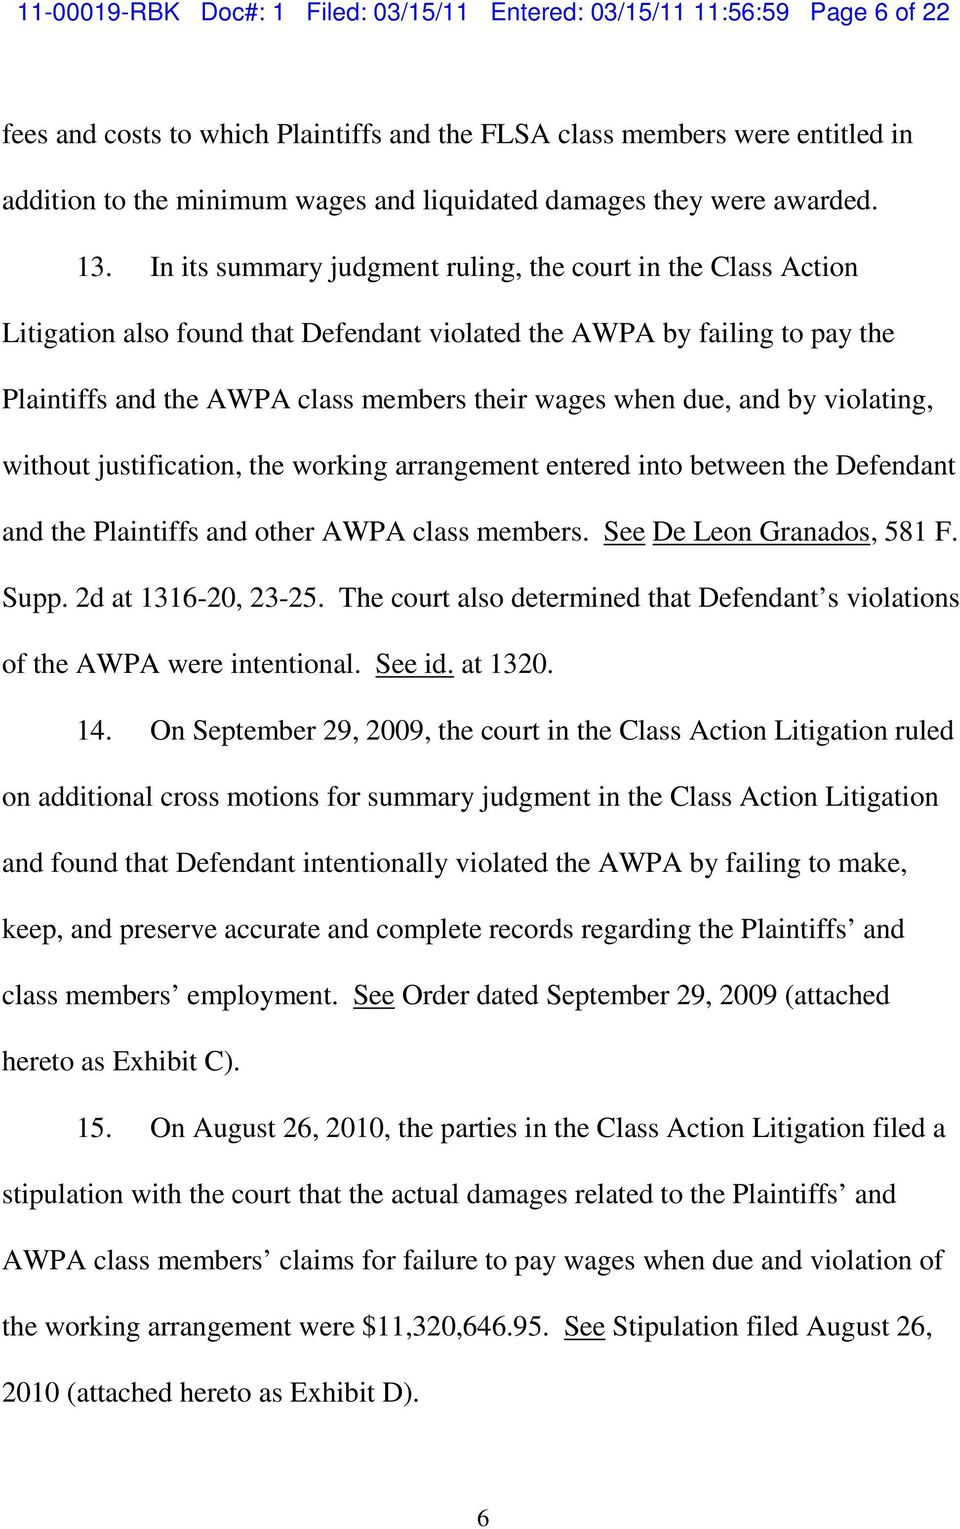 In its summary judgment ruling, the court in the Class Action Litigation also found that Defendant violated the AWPA by failing to pay the Plaintiffs and the AWPA class members their wages when due,